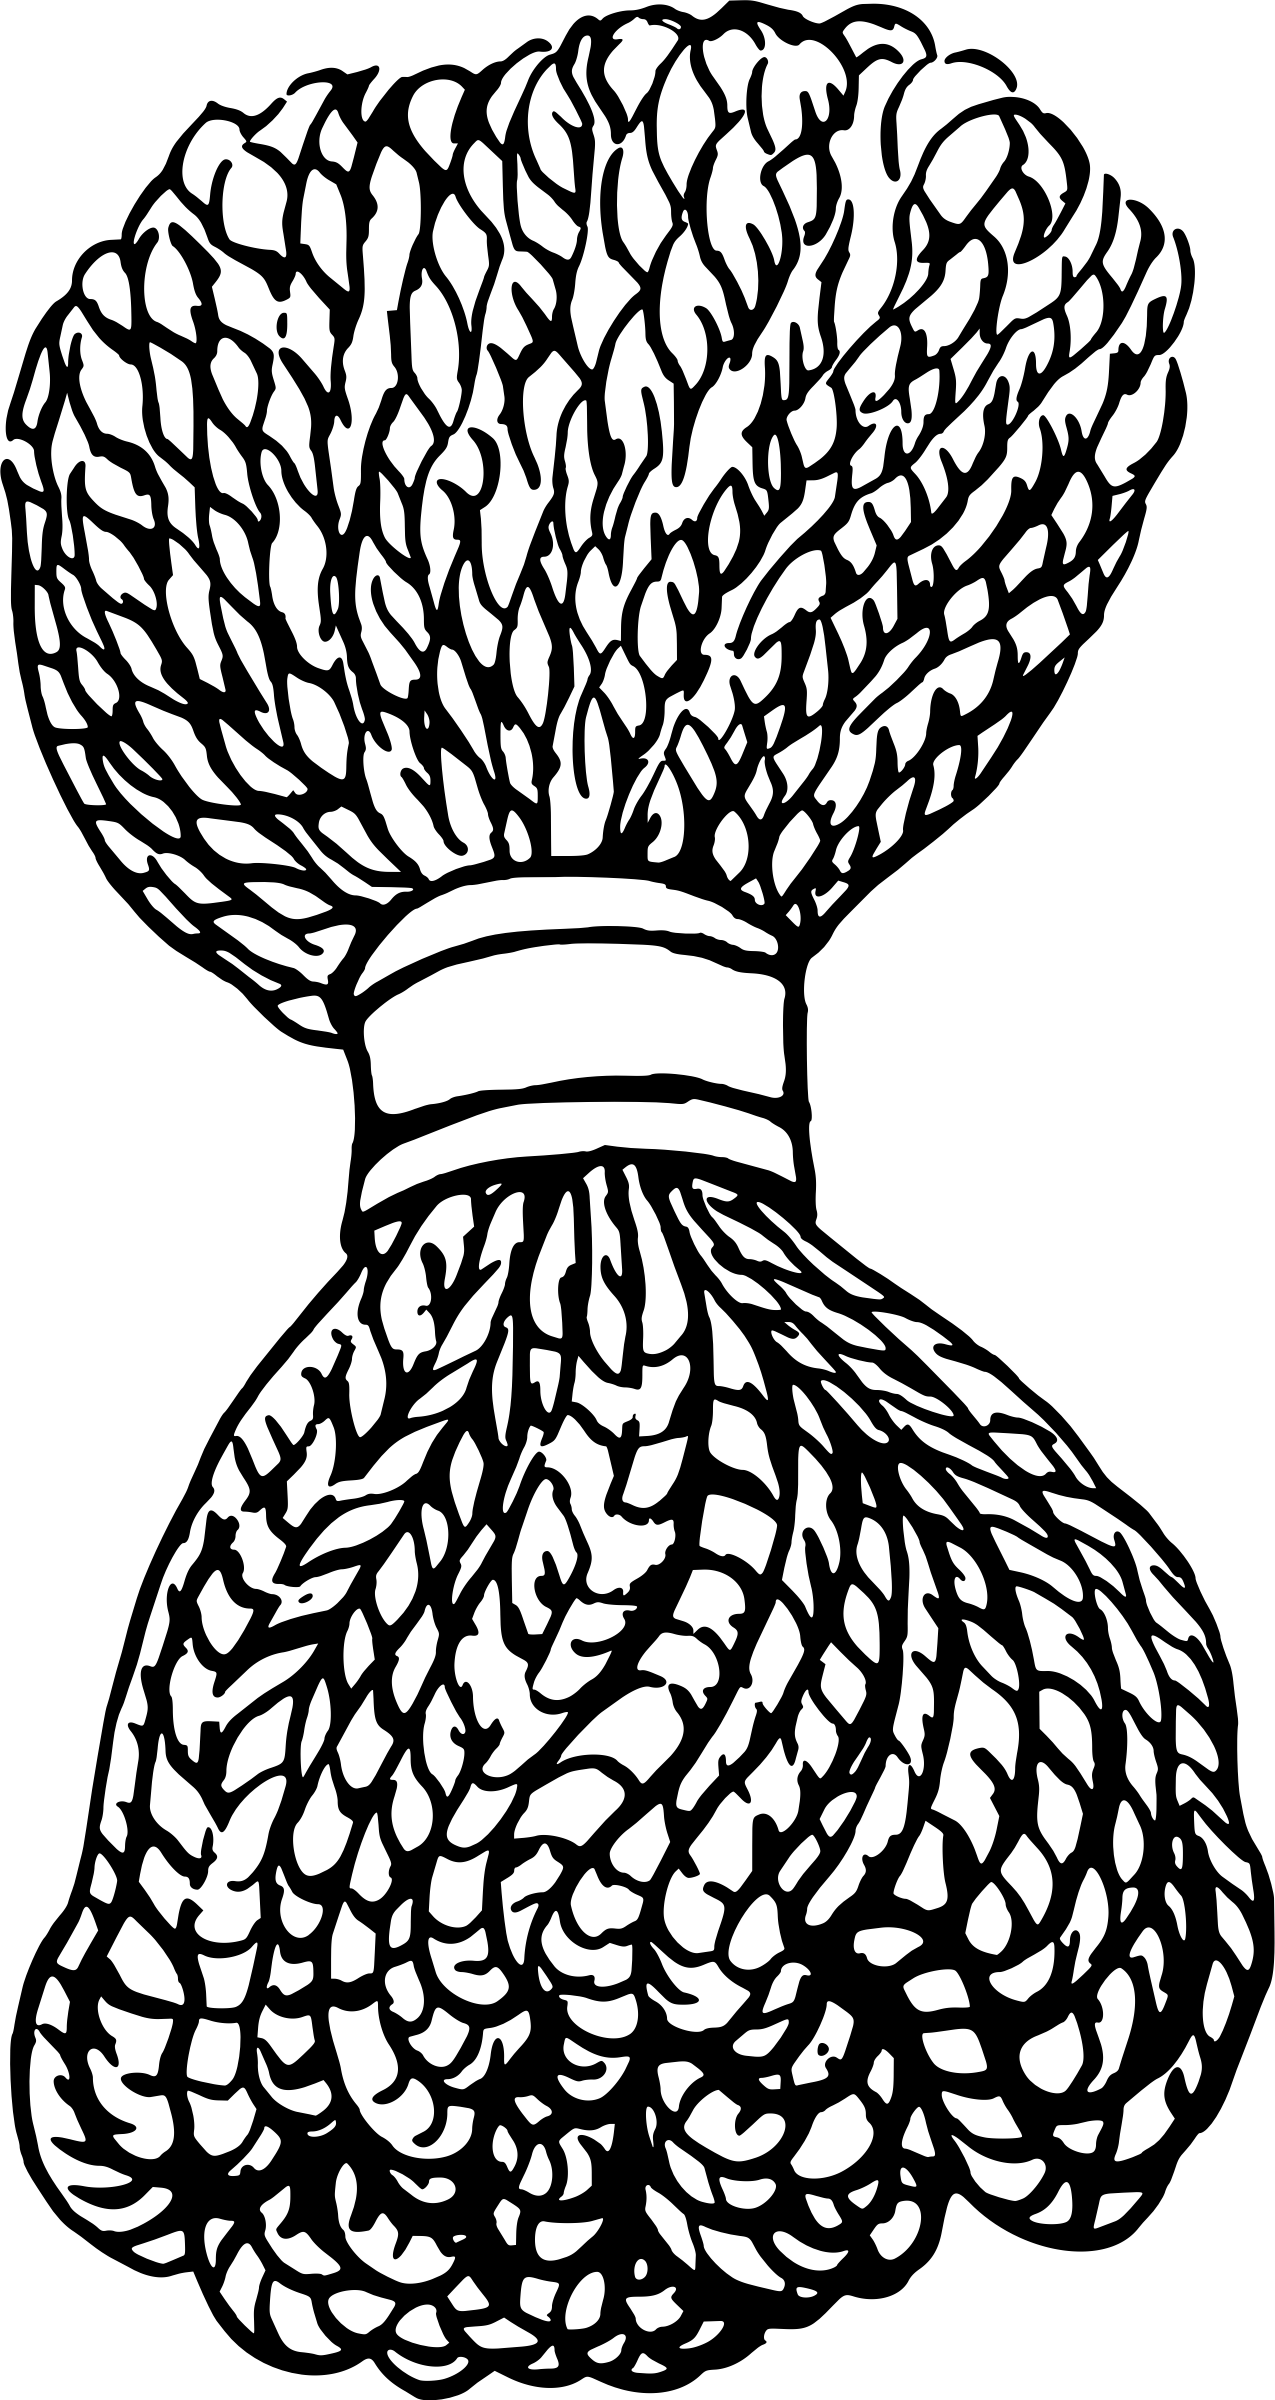 Bunch Of Rope Vector Clipart Image